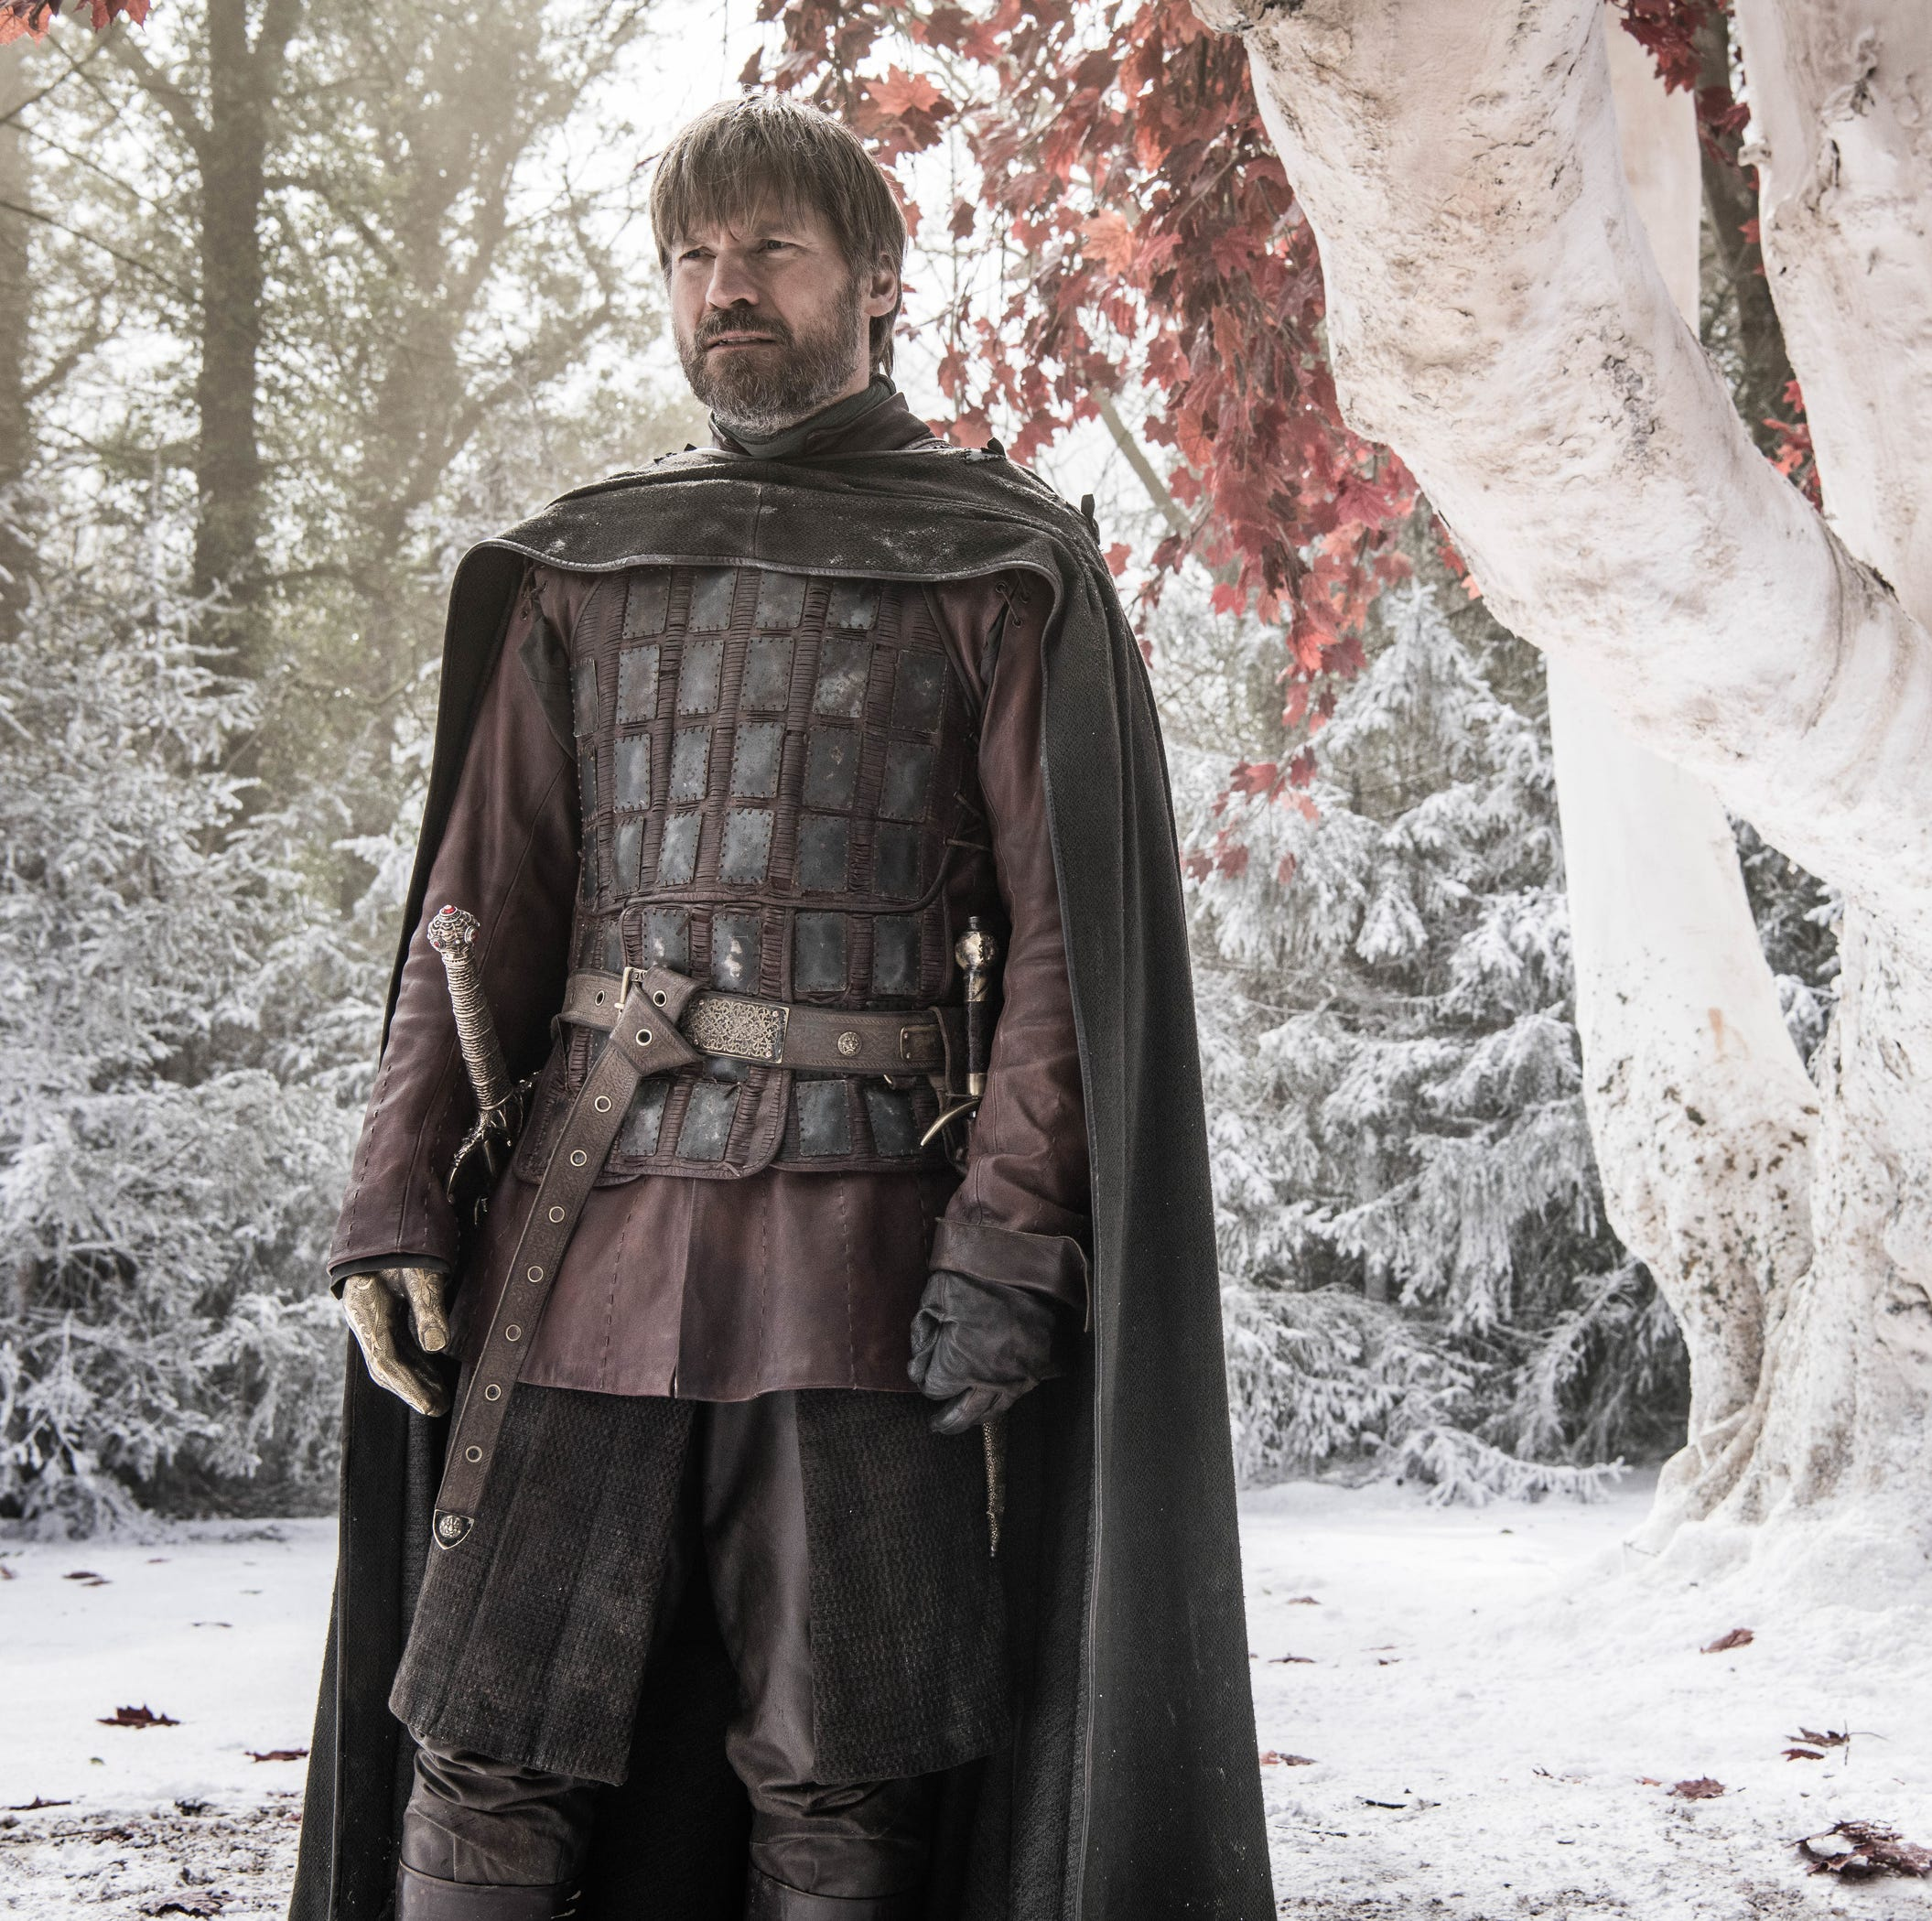 Sorry, 'Game of Thrones' fans, Nikolaj Coster-Waldau isn't coming to Phoenix Fan Fusion